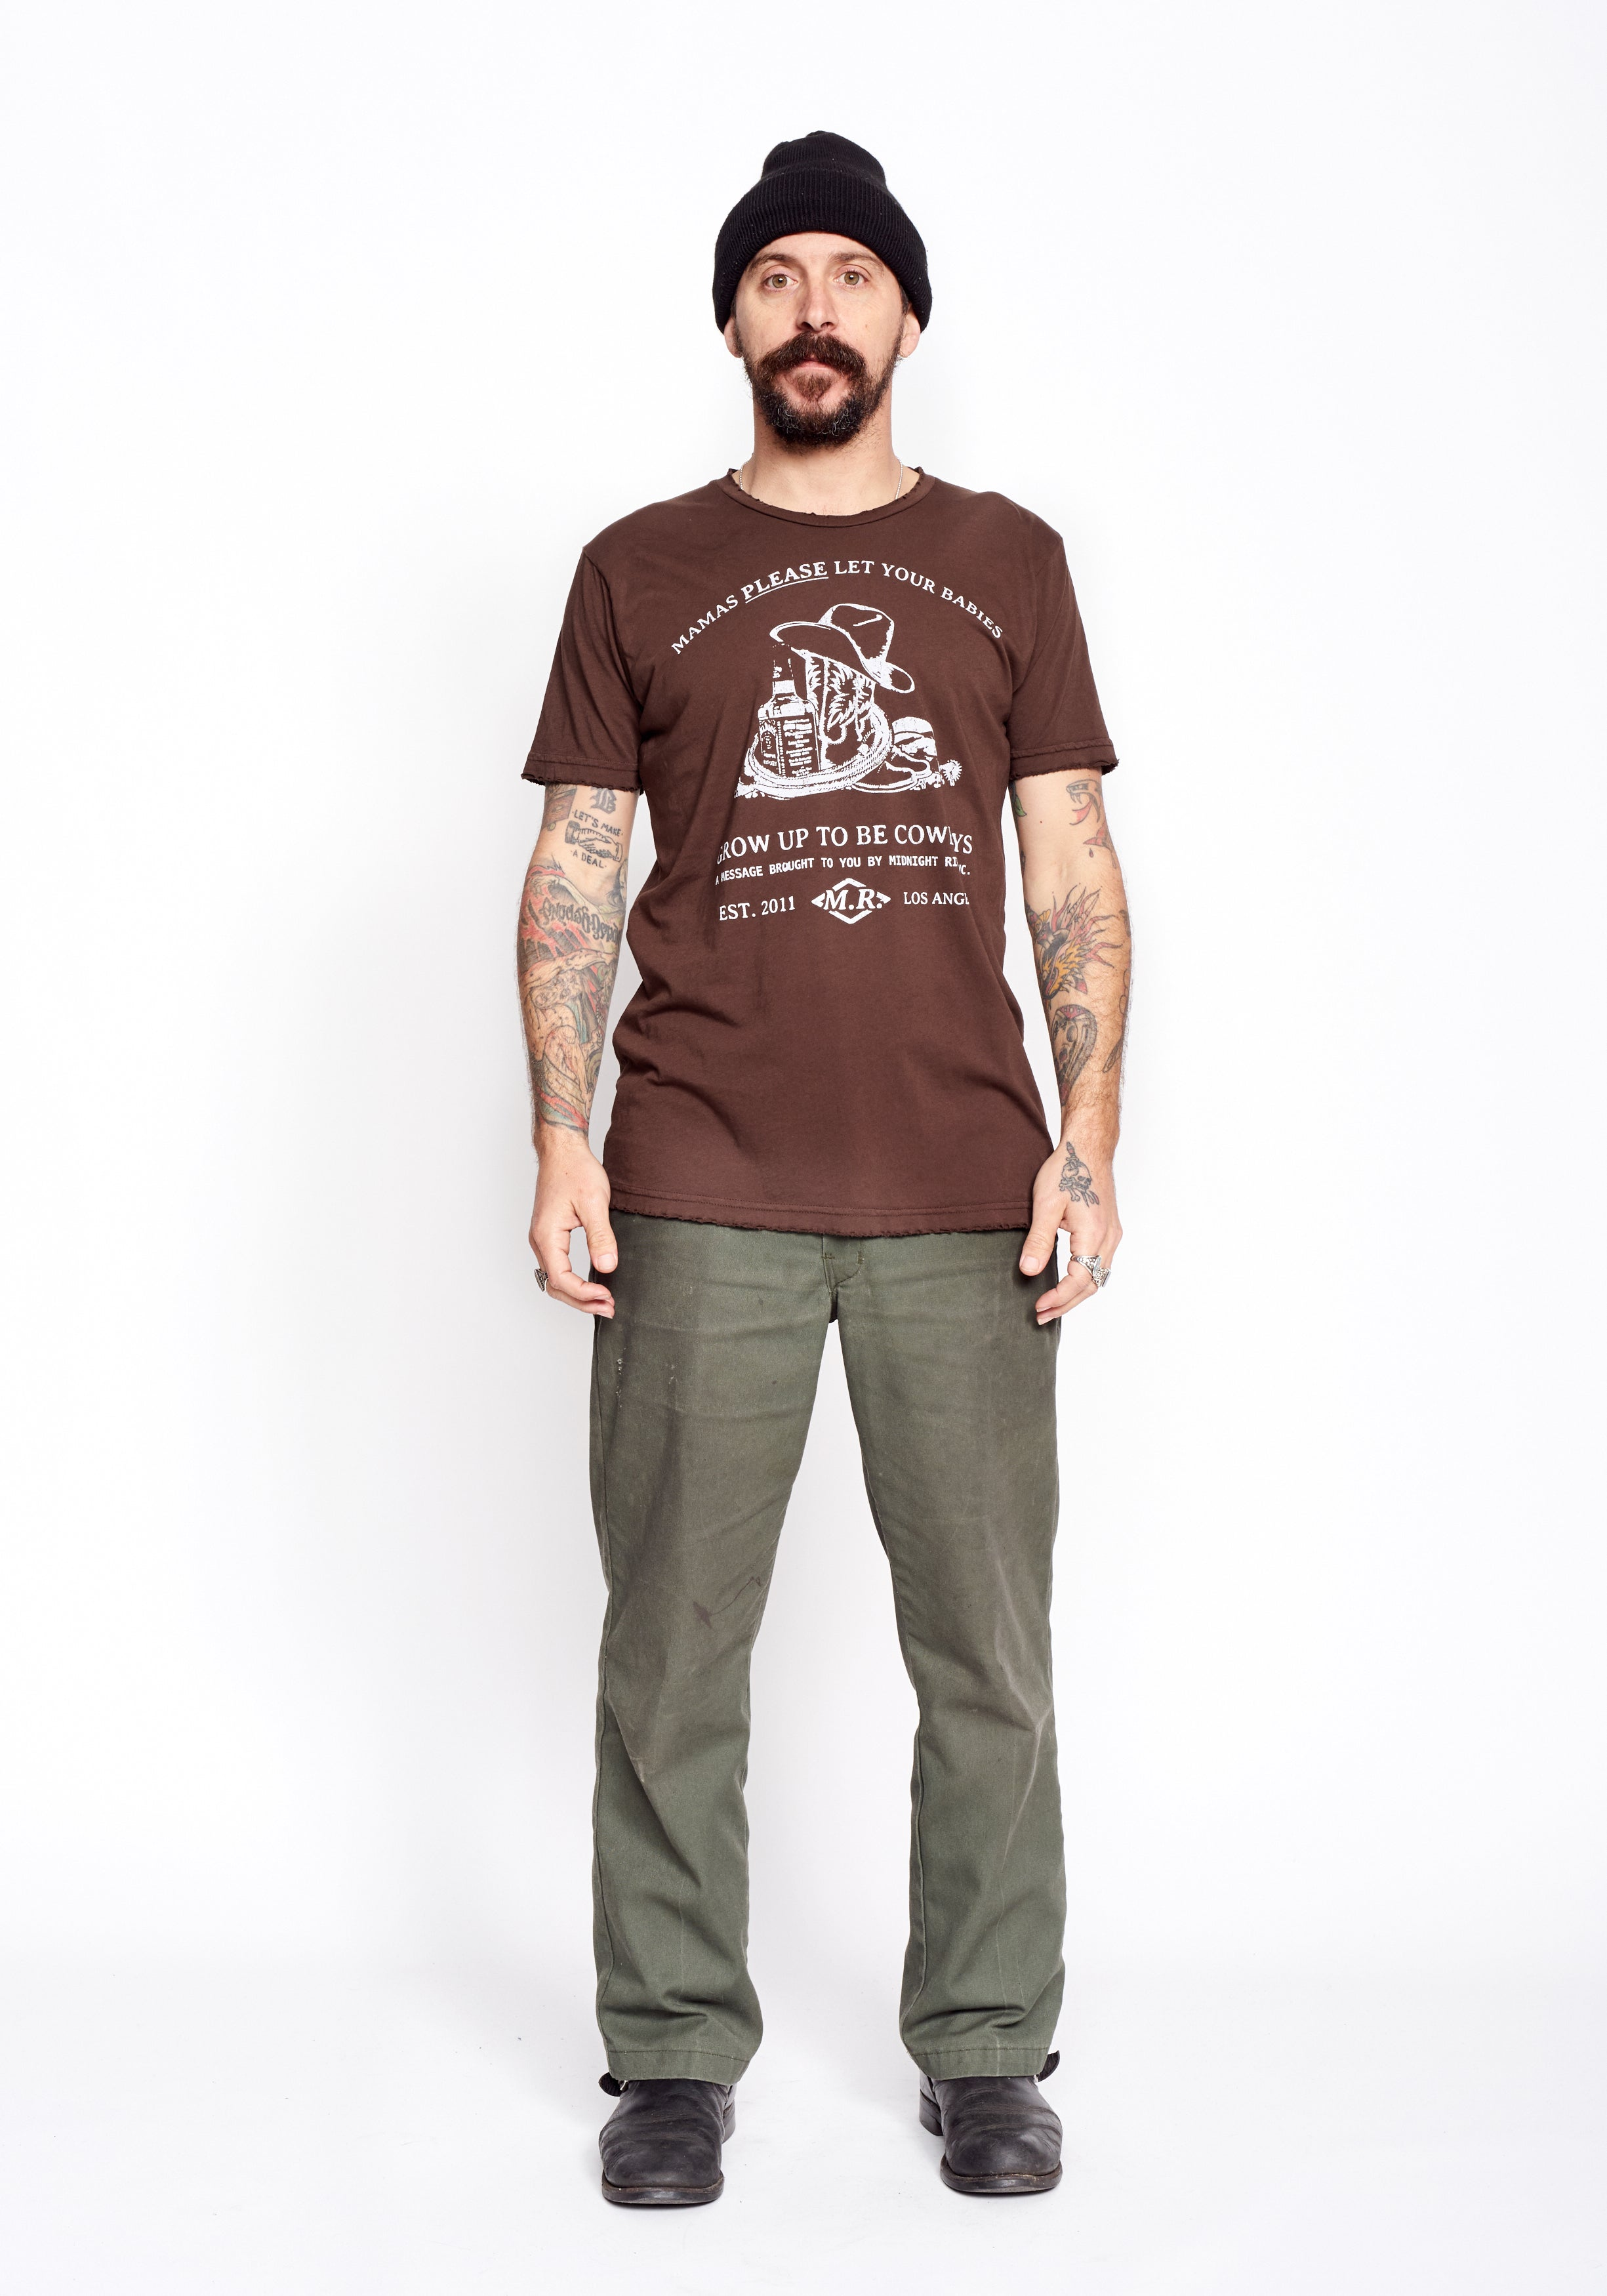 Please Let Your Babies Grow Up To Be Cowboys Men's Crew - Tobacco Brown - Men's Tee Shirt - Midnight Rider